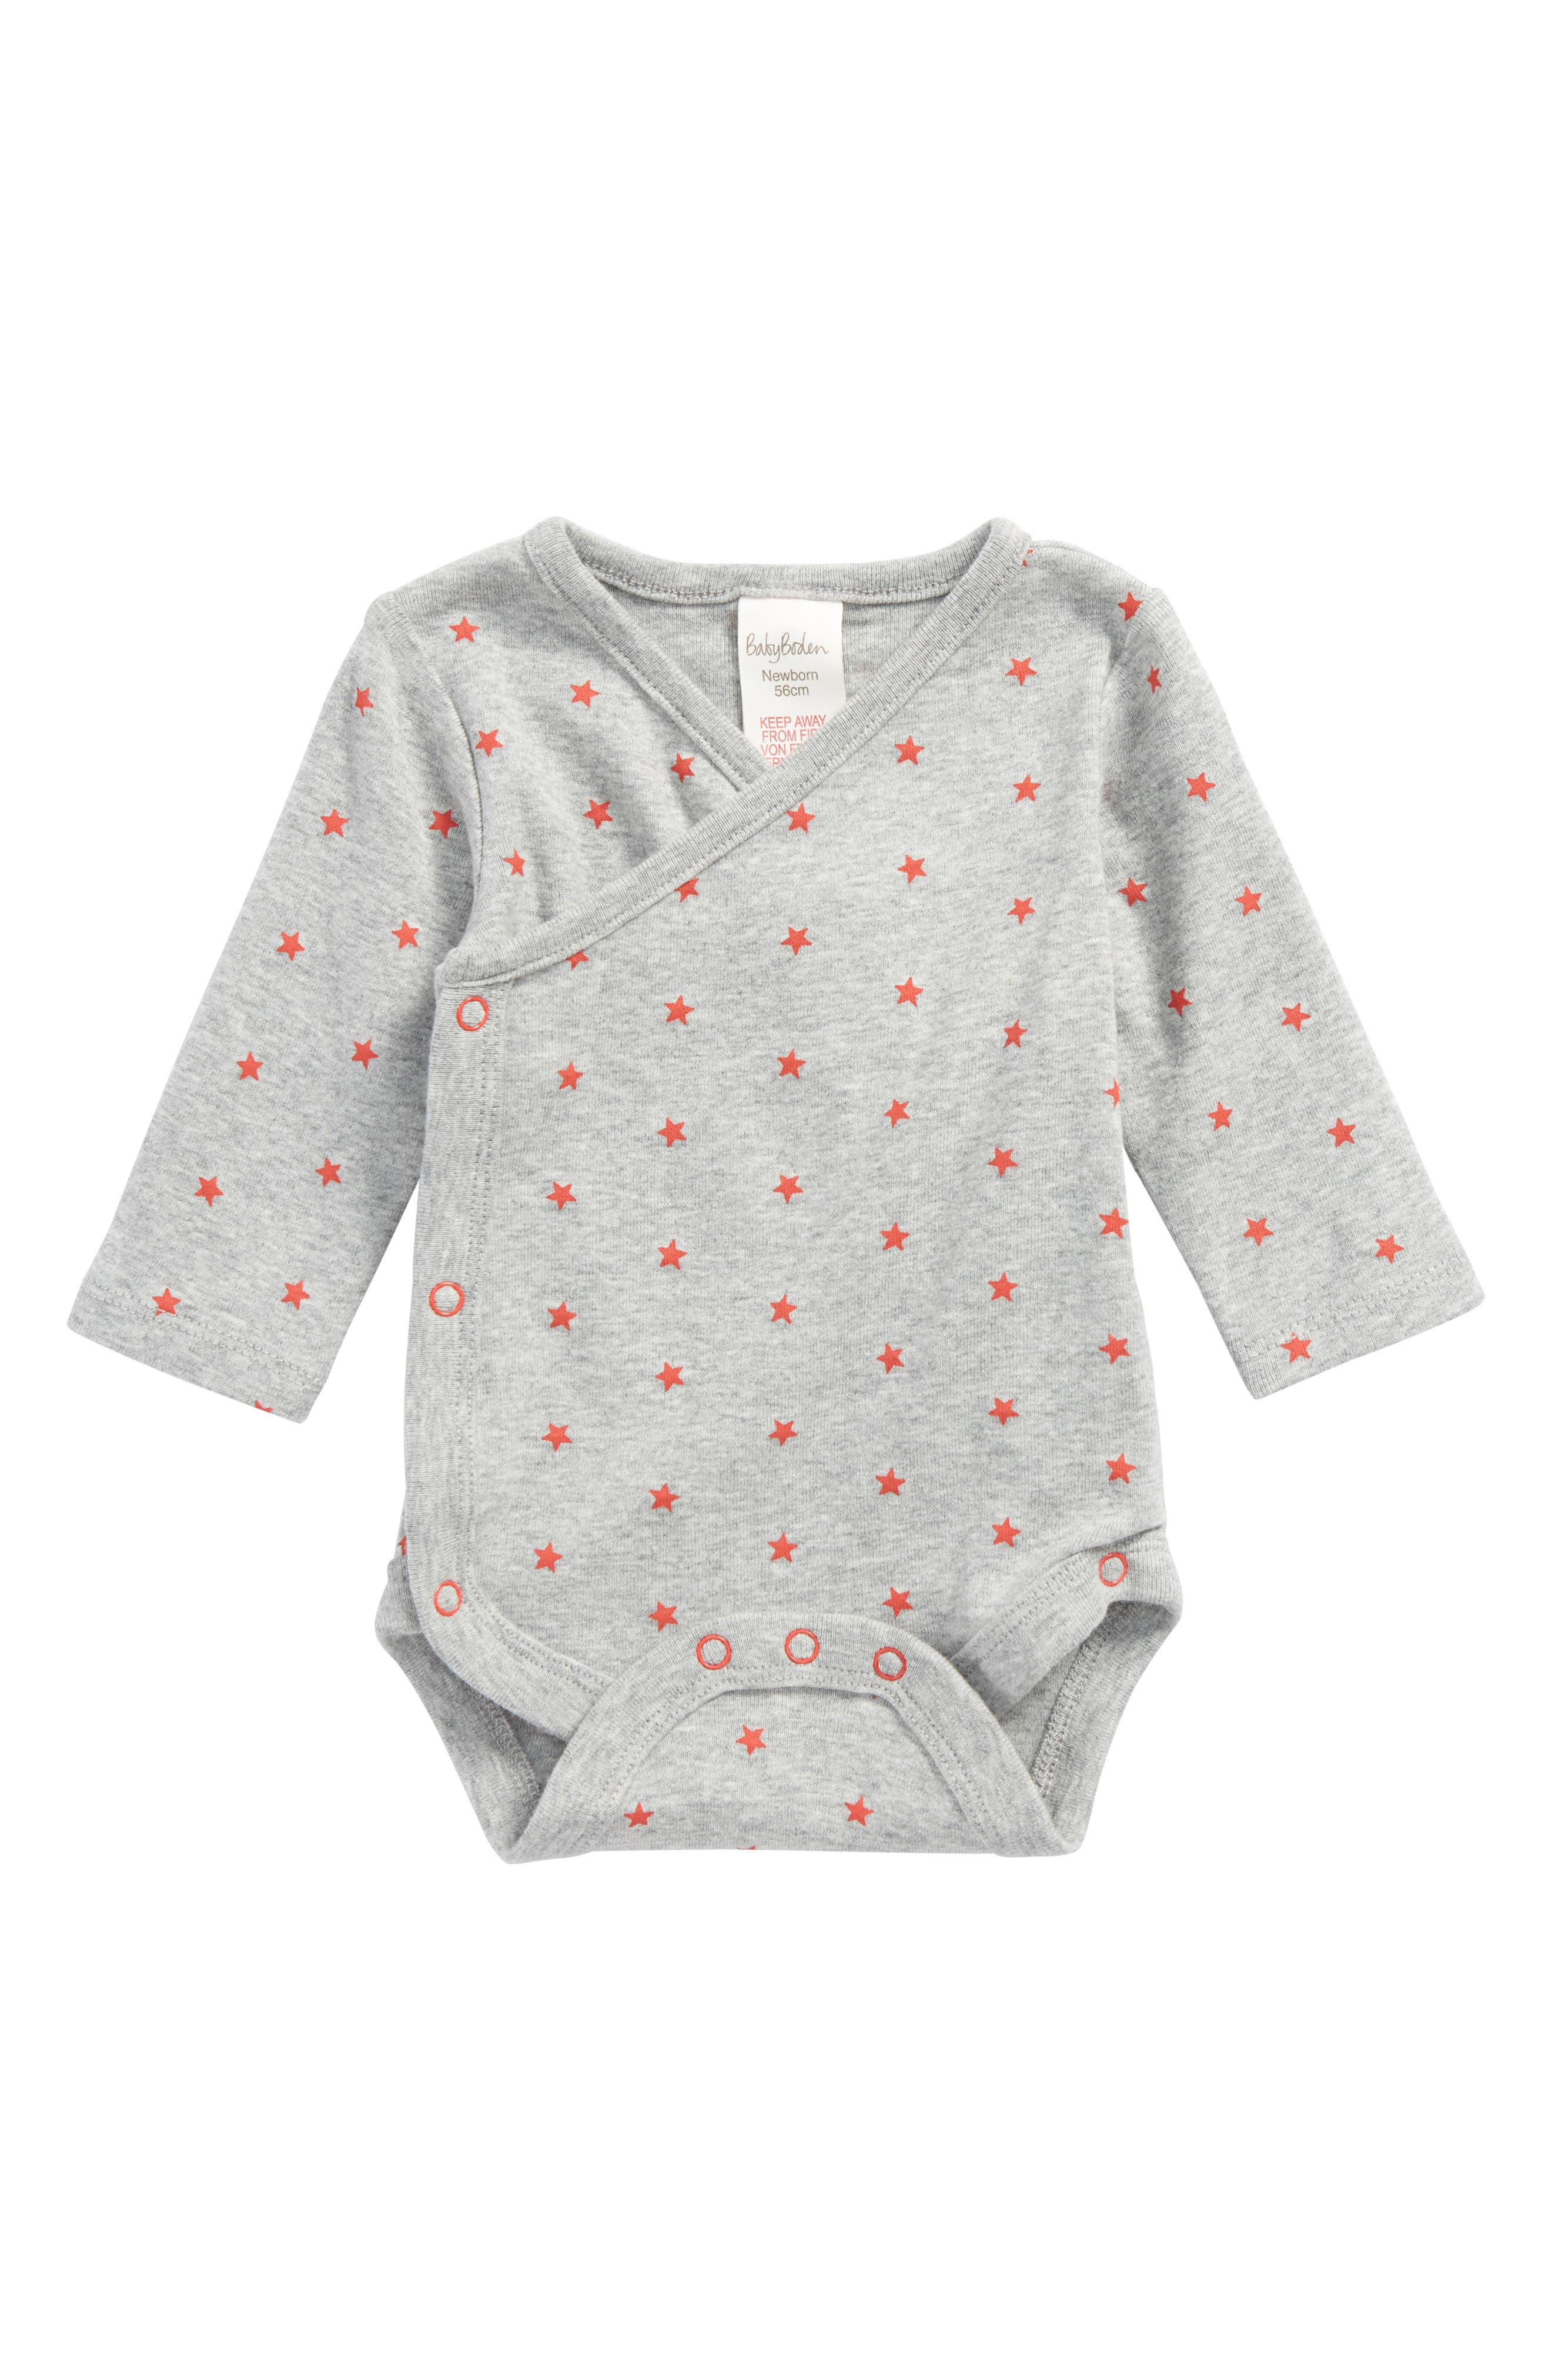 Fun Organic Cotton Wrap Bodysuit,                             Main thumbnail 1, color,                             Grey Marl/ Crayon Red